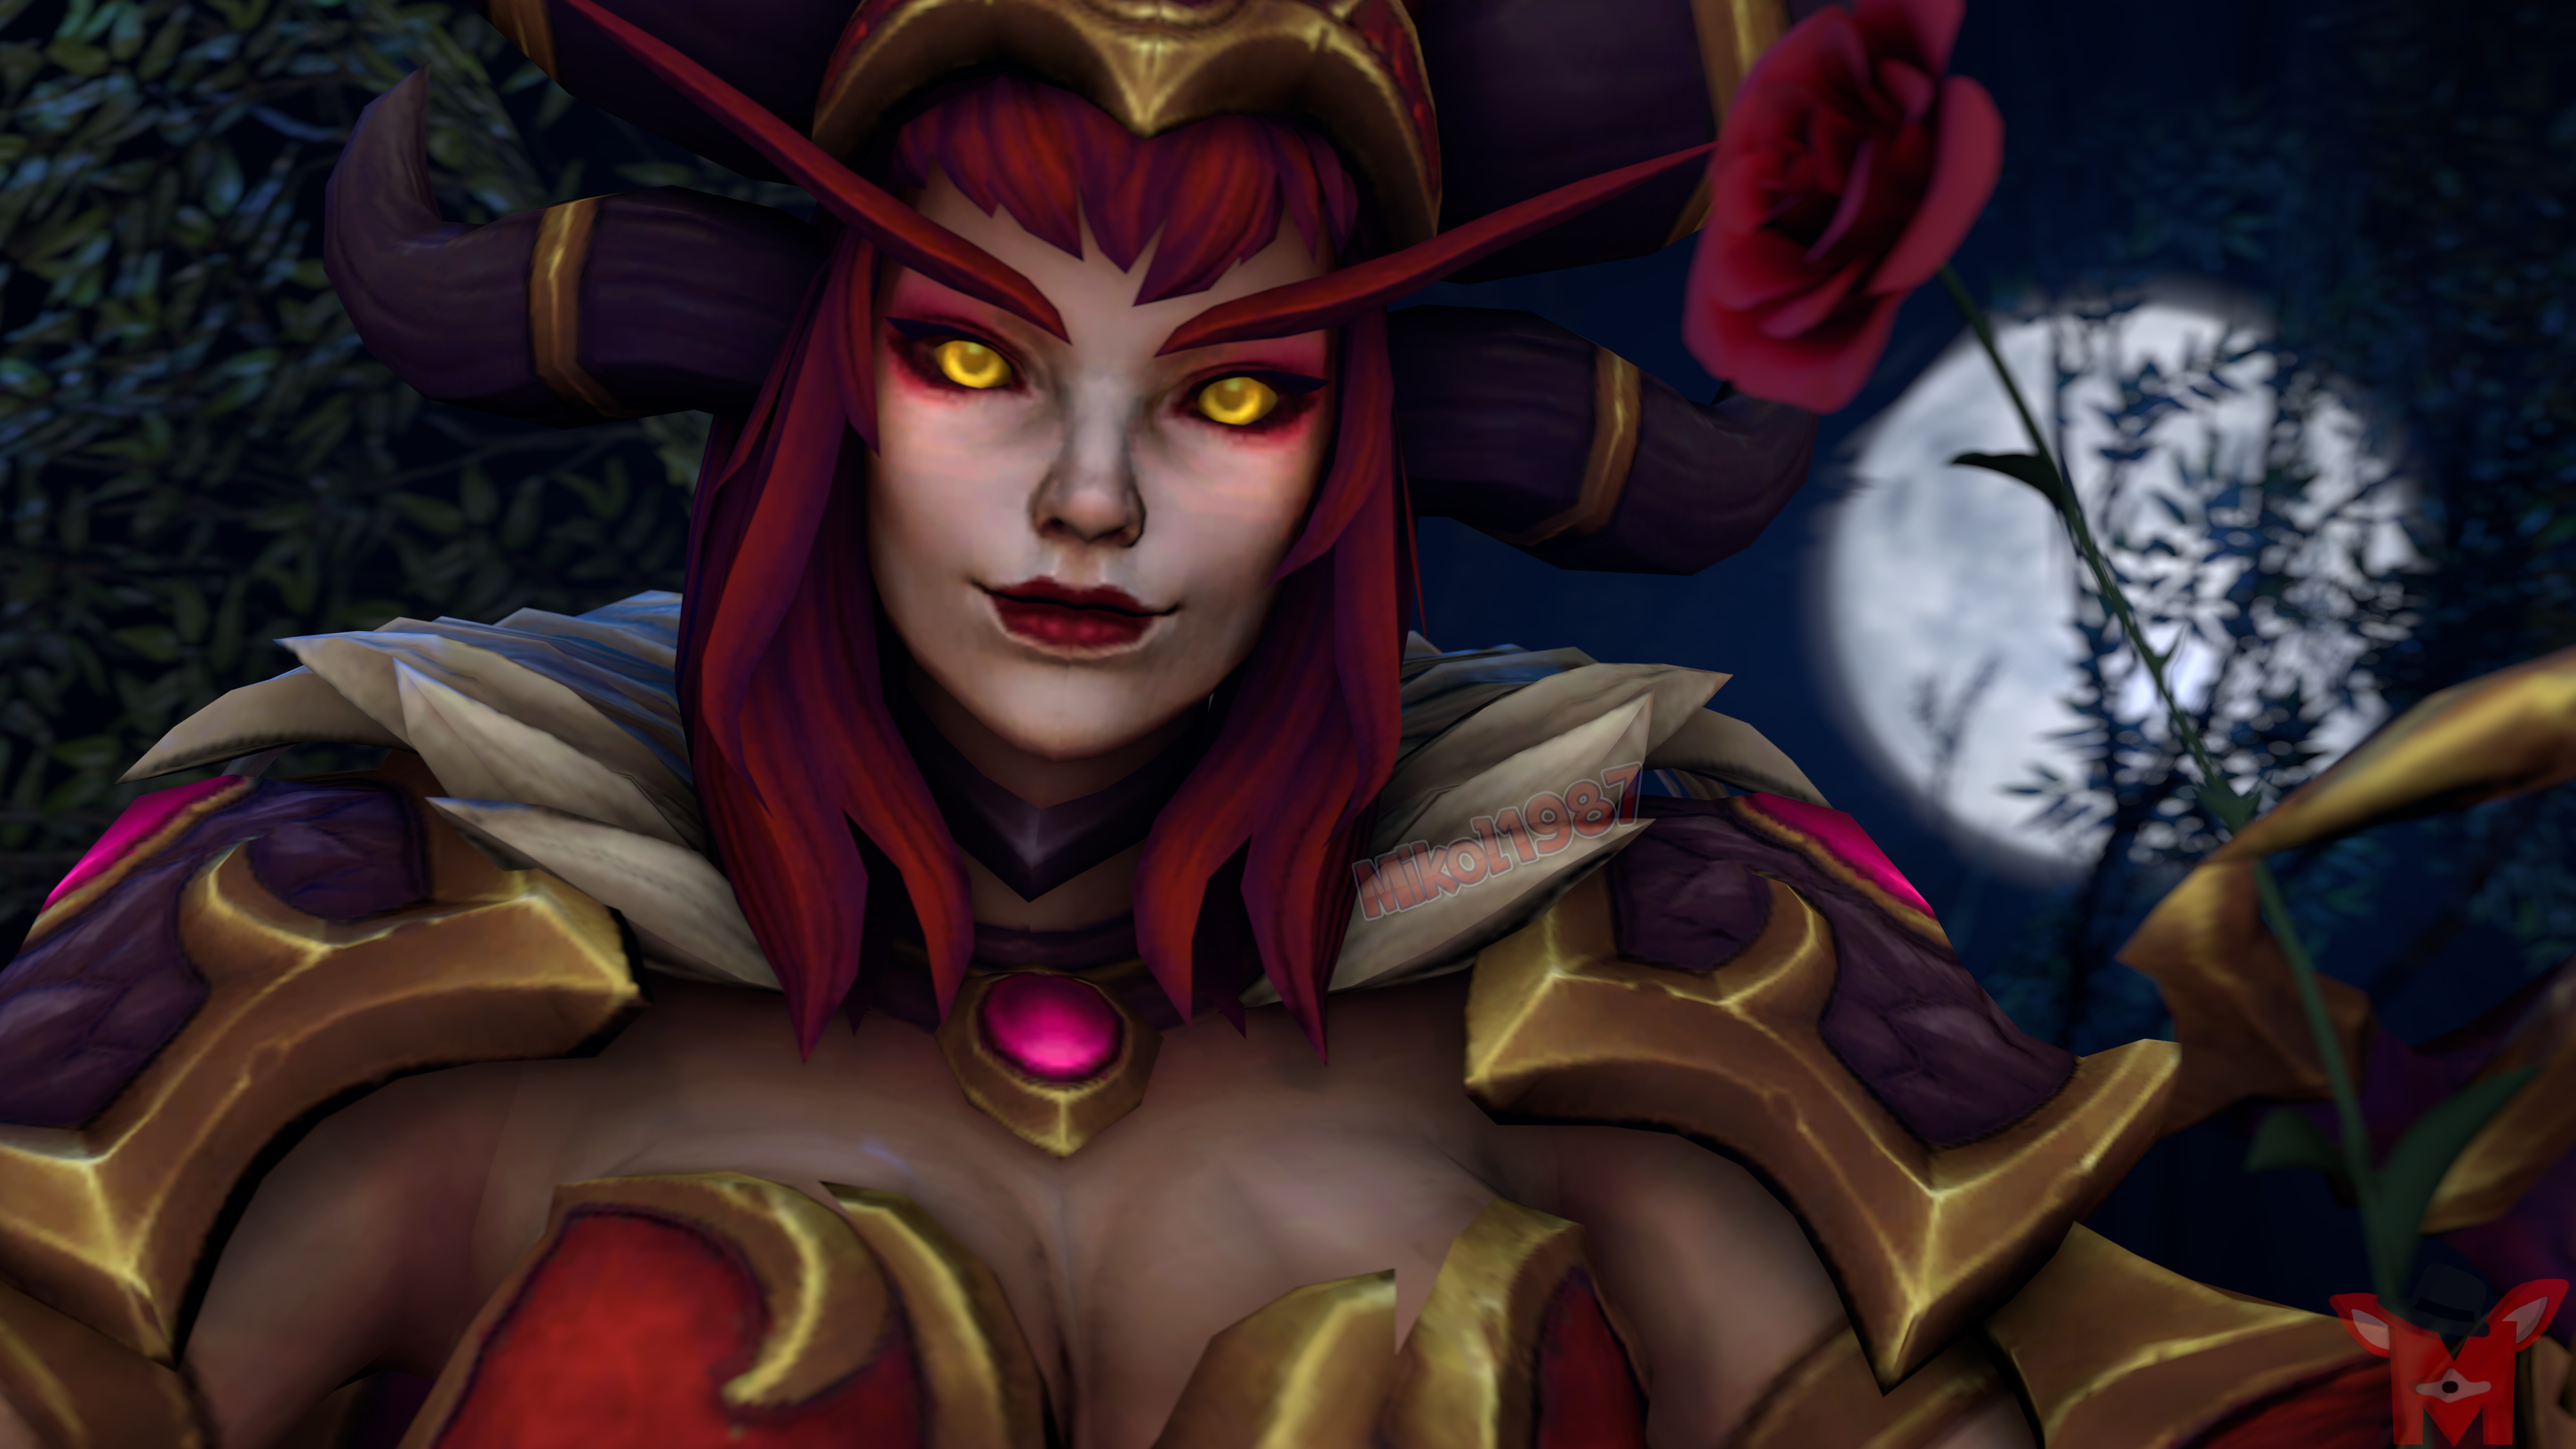 Hots Wow Sfm Alexstrasza The Life Binder By Mikol1987 On Deviantart Alexstrasza is usually played as a solo healer and shines on maps with static objectives. deviantart